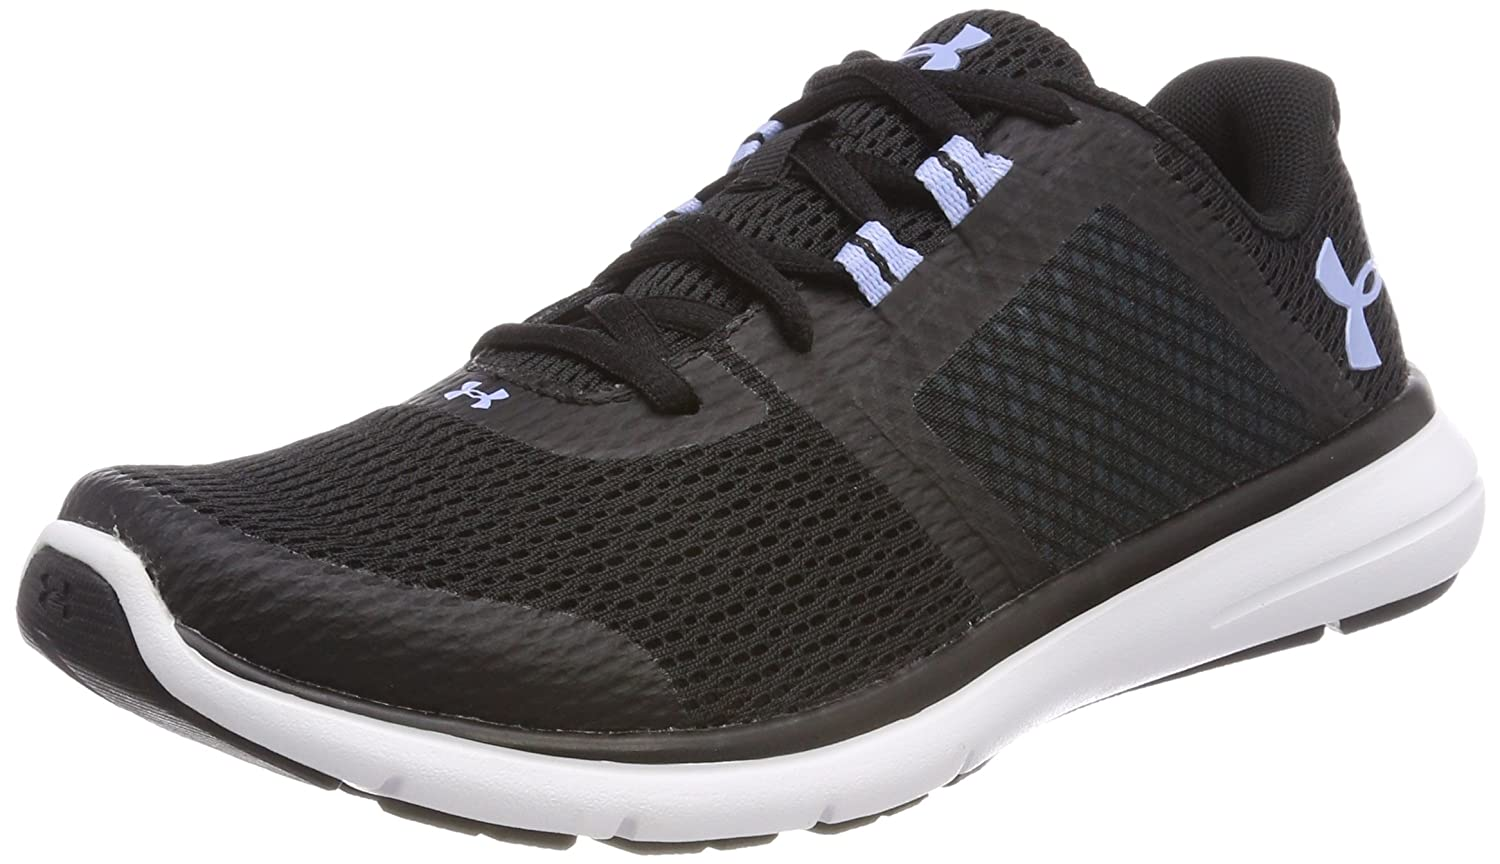 Under Armour Women's Fuse FST Cross-Country Running Shoe B0777SD8ML 8.5 B(M) US|Black/White/Blue